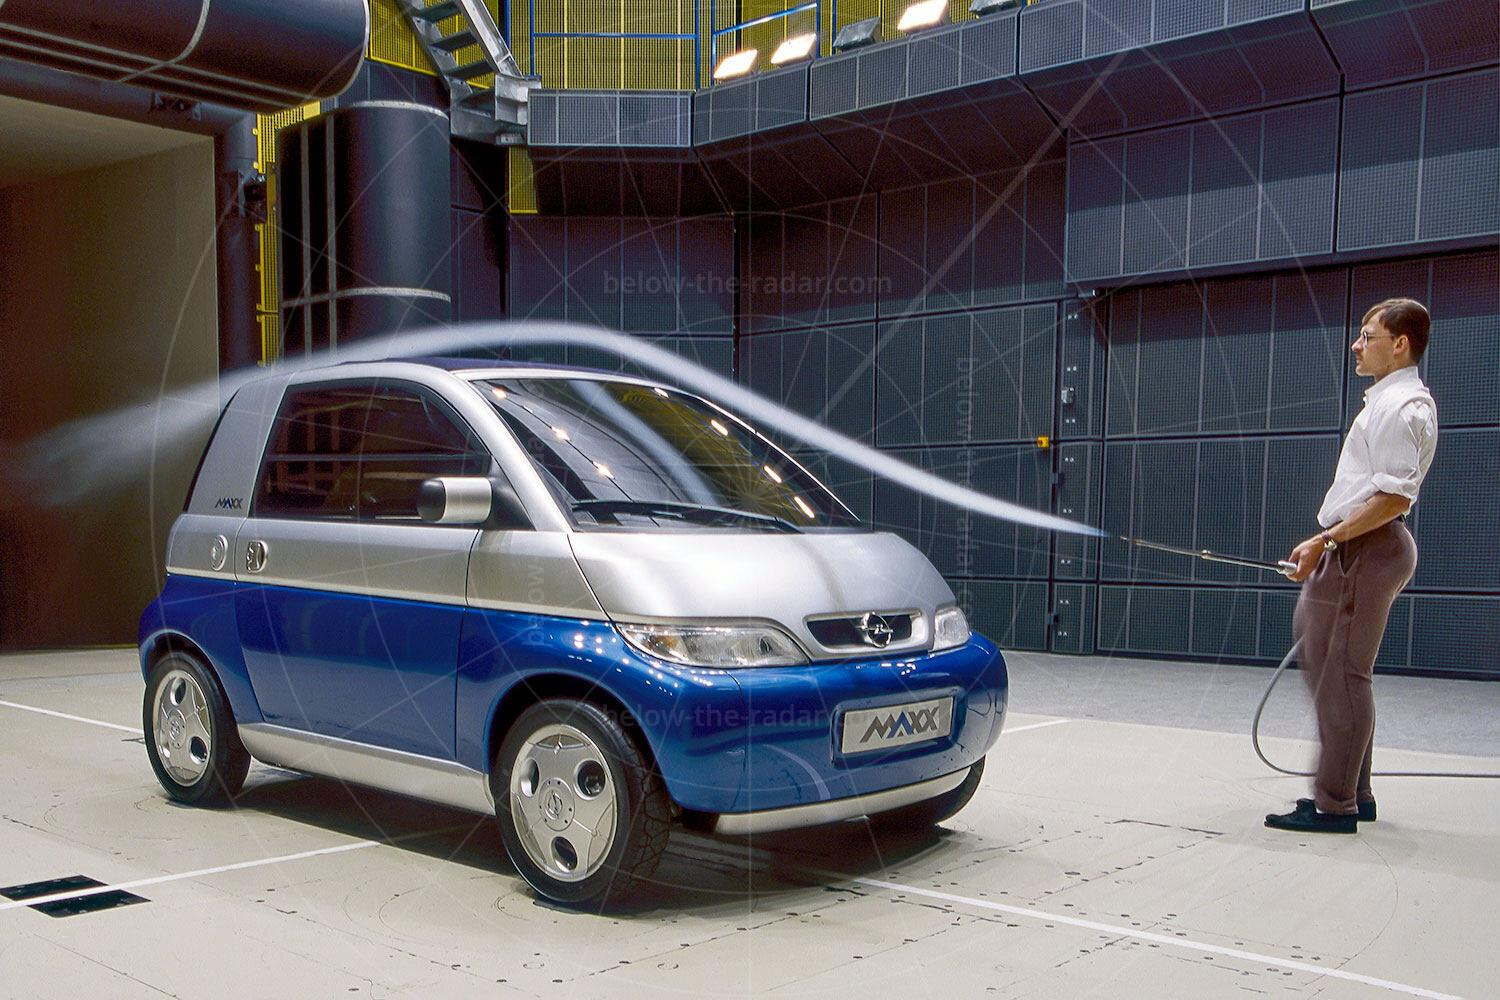 Opel Maxx two-door in the wind tunnel Pic: GM | Opel Maxx two-door in the wind tunnel